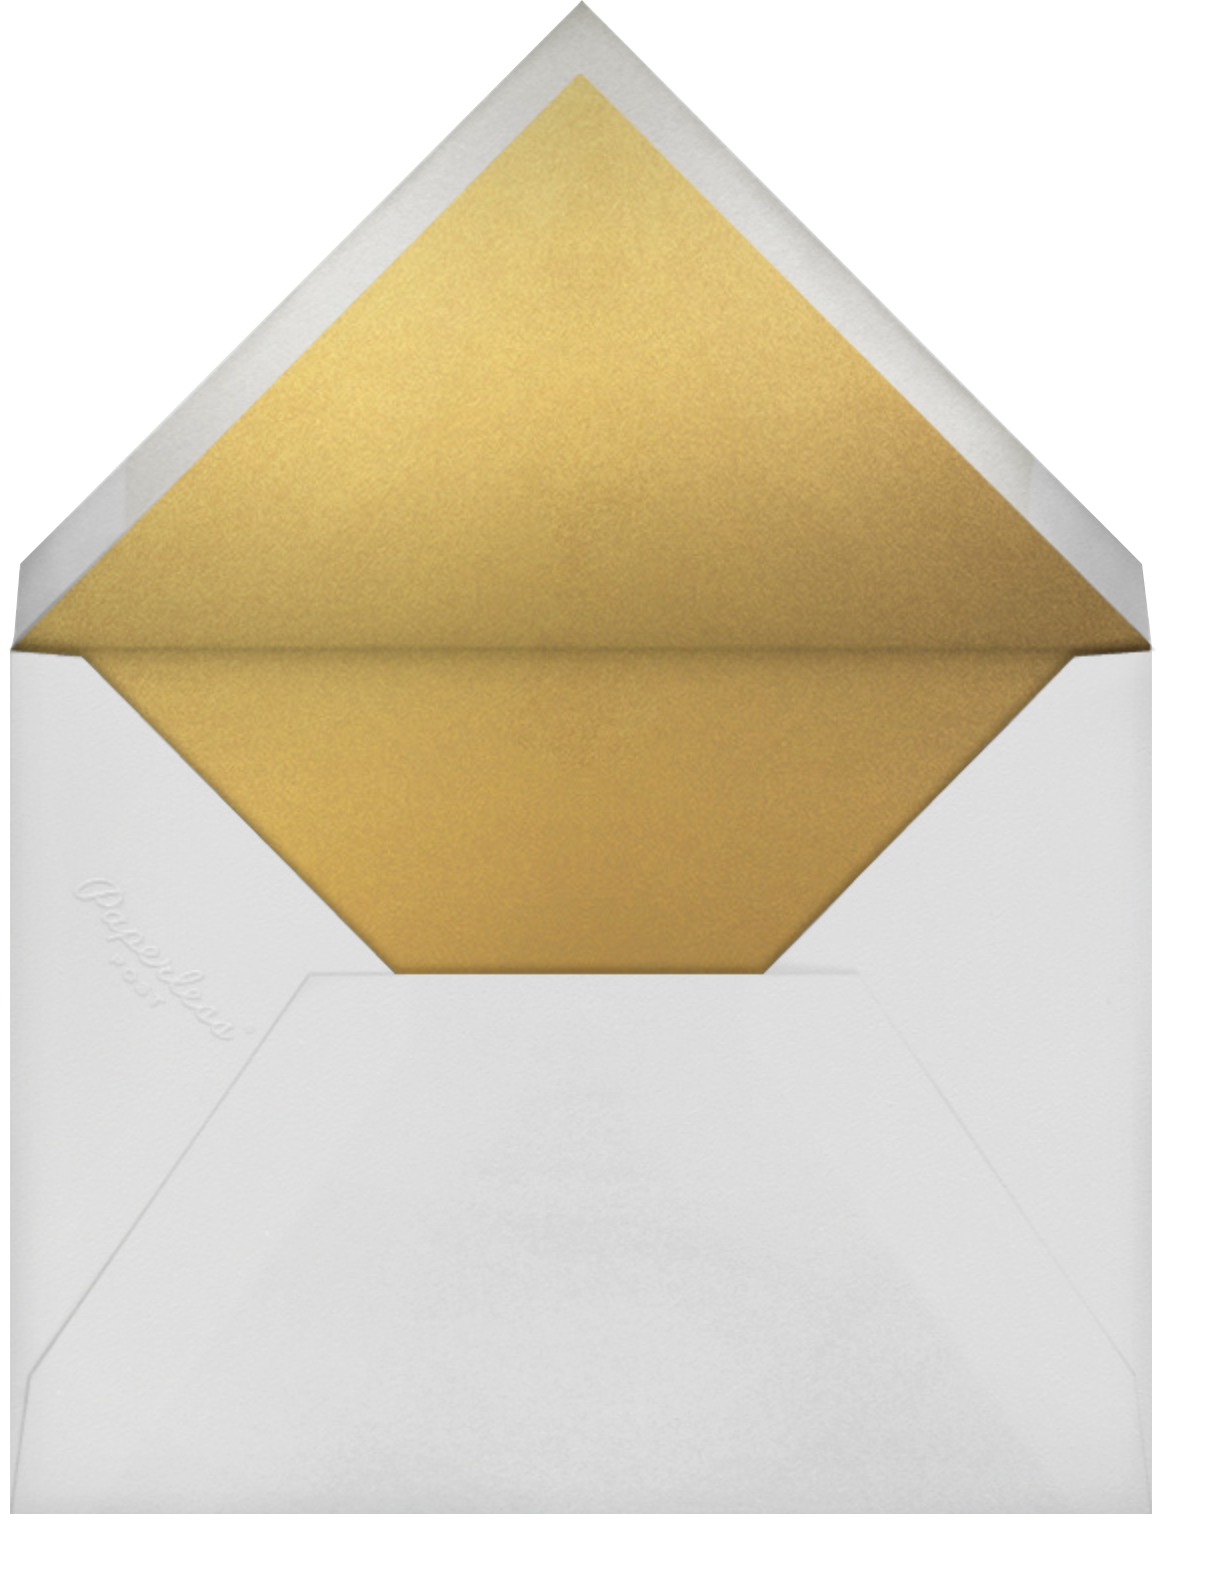 Canal House - Paperless Post - Moving - envelope back